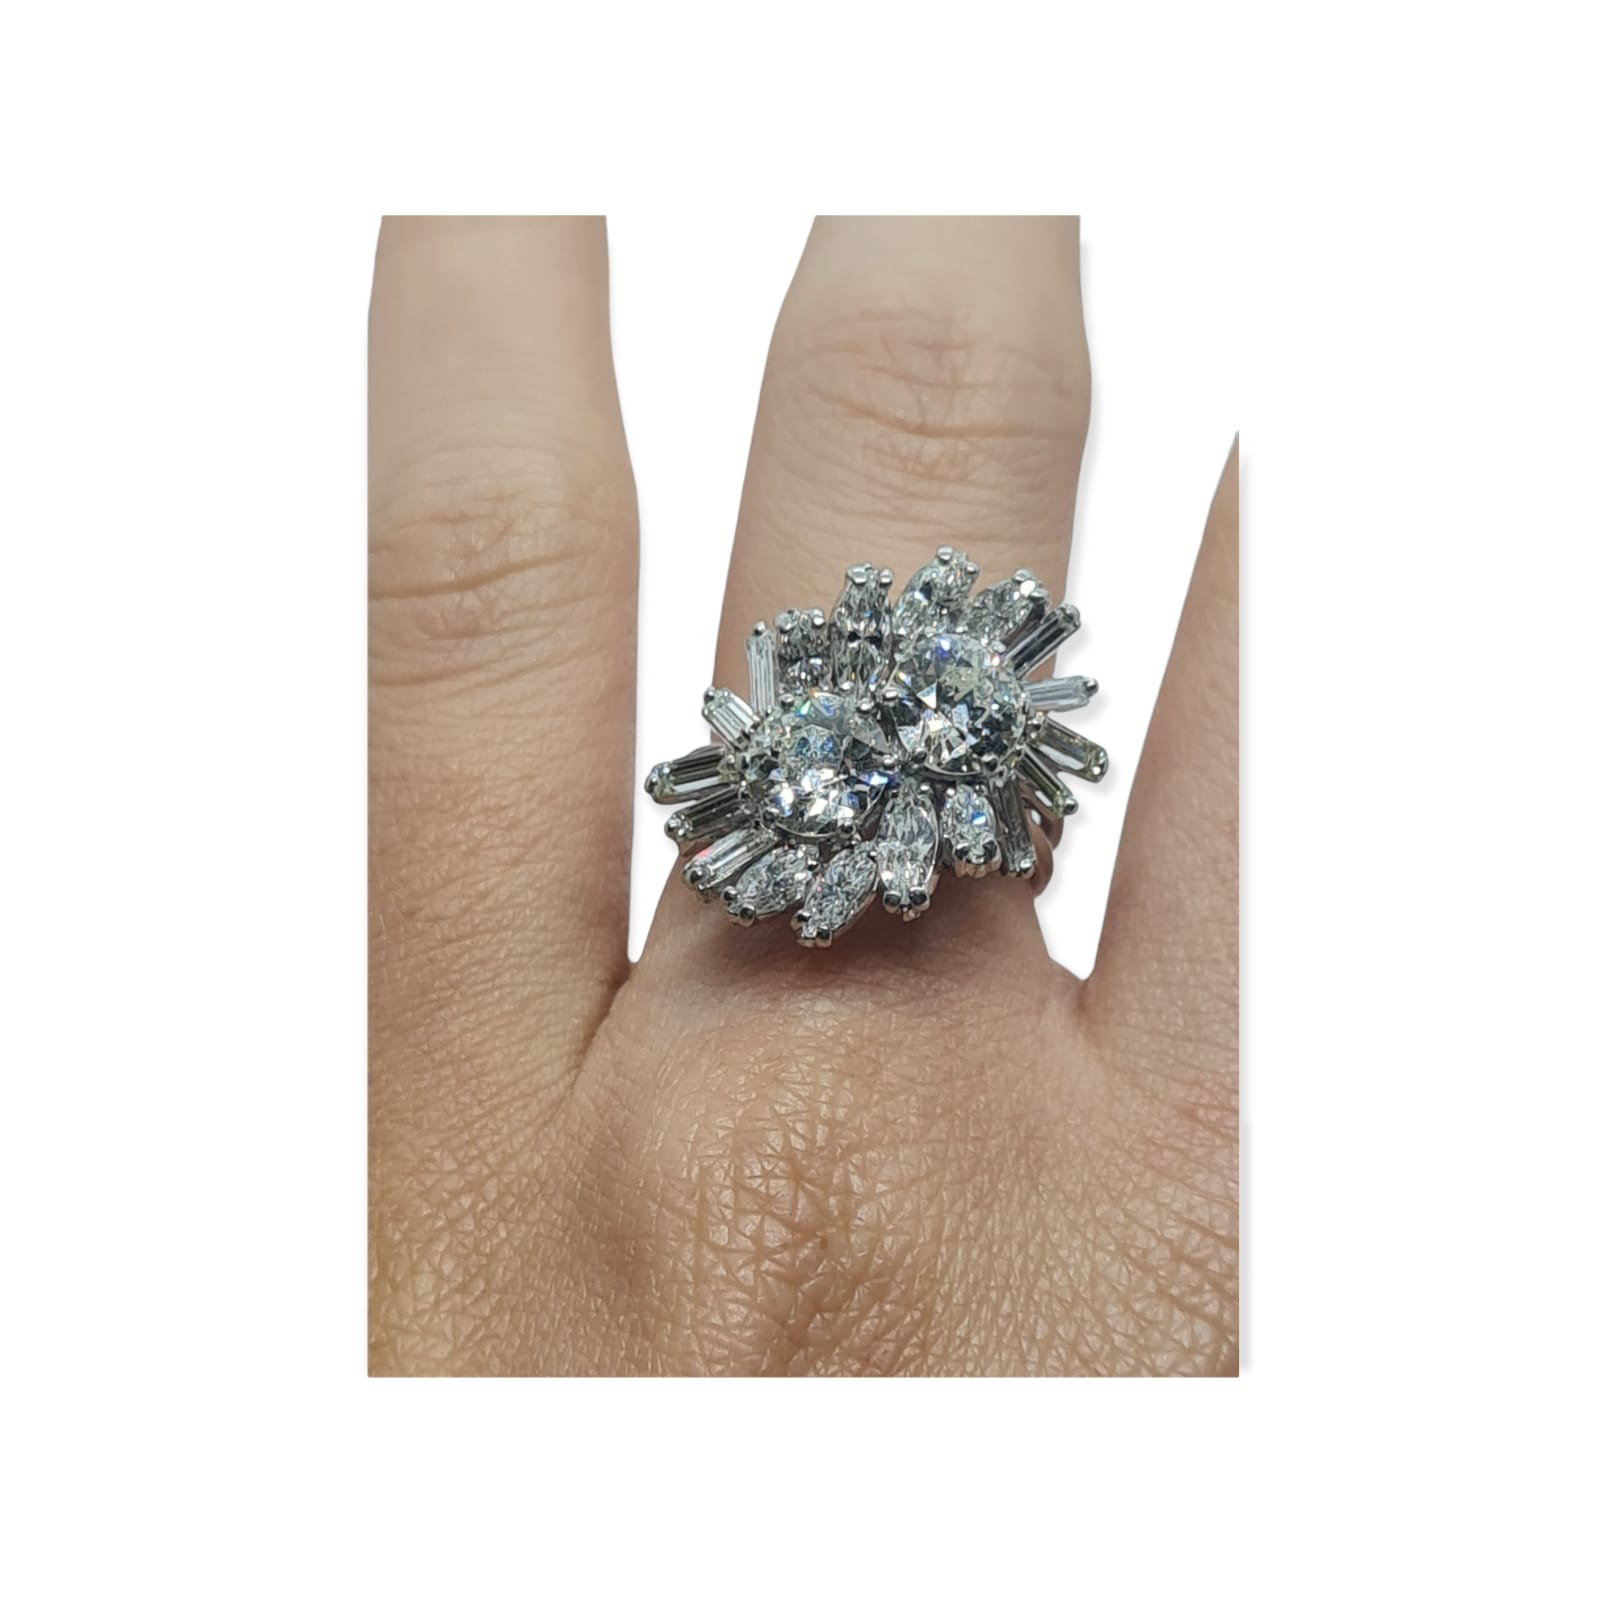 18k white gold diamond cluster ring with approx over 5ct diamonds in total, weight 10g and size M1/2 - Image 4 of 11